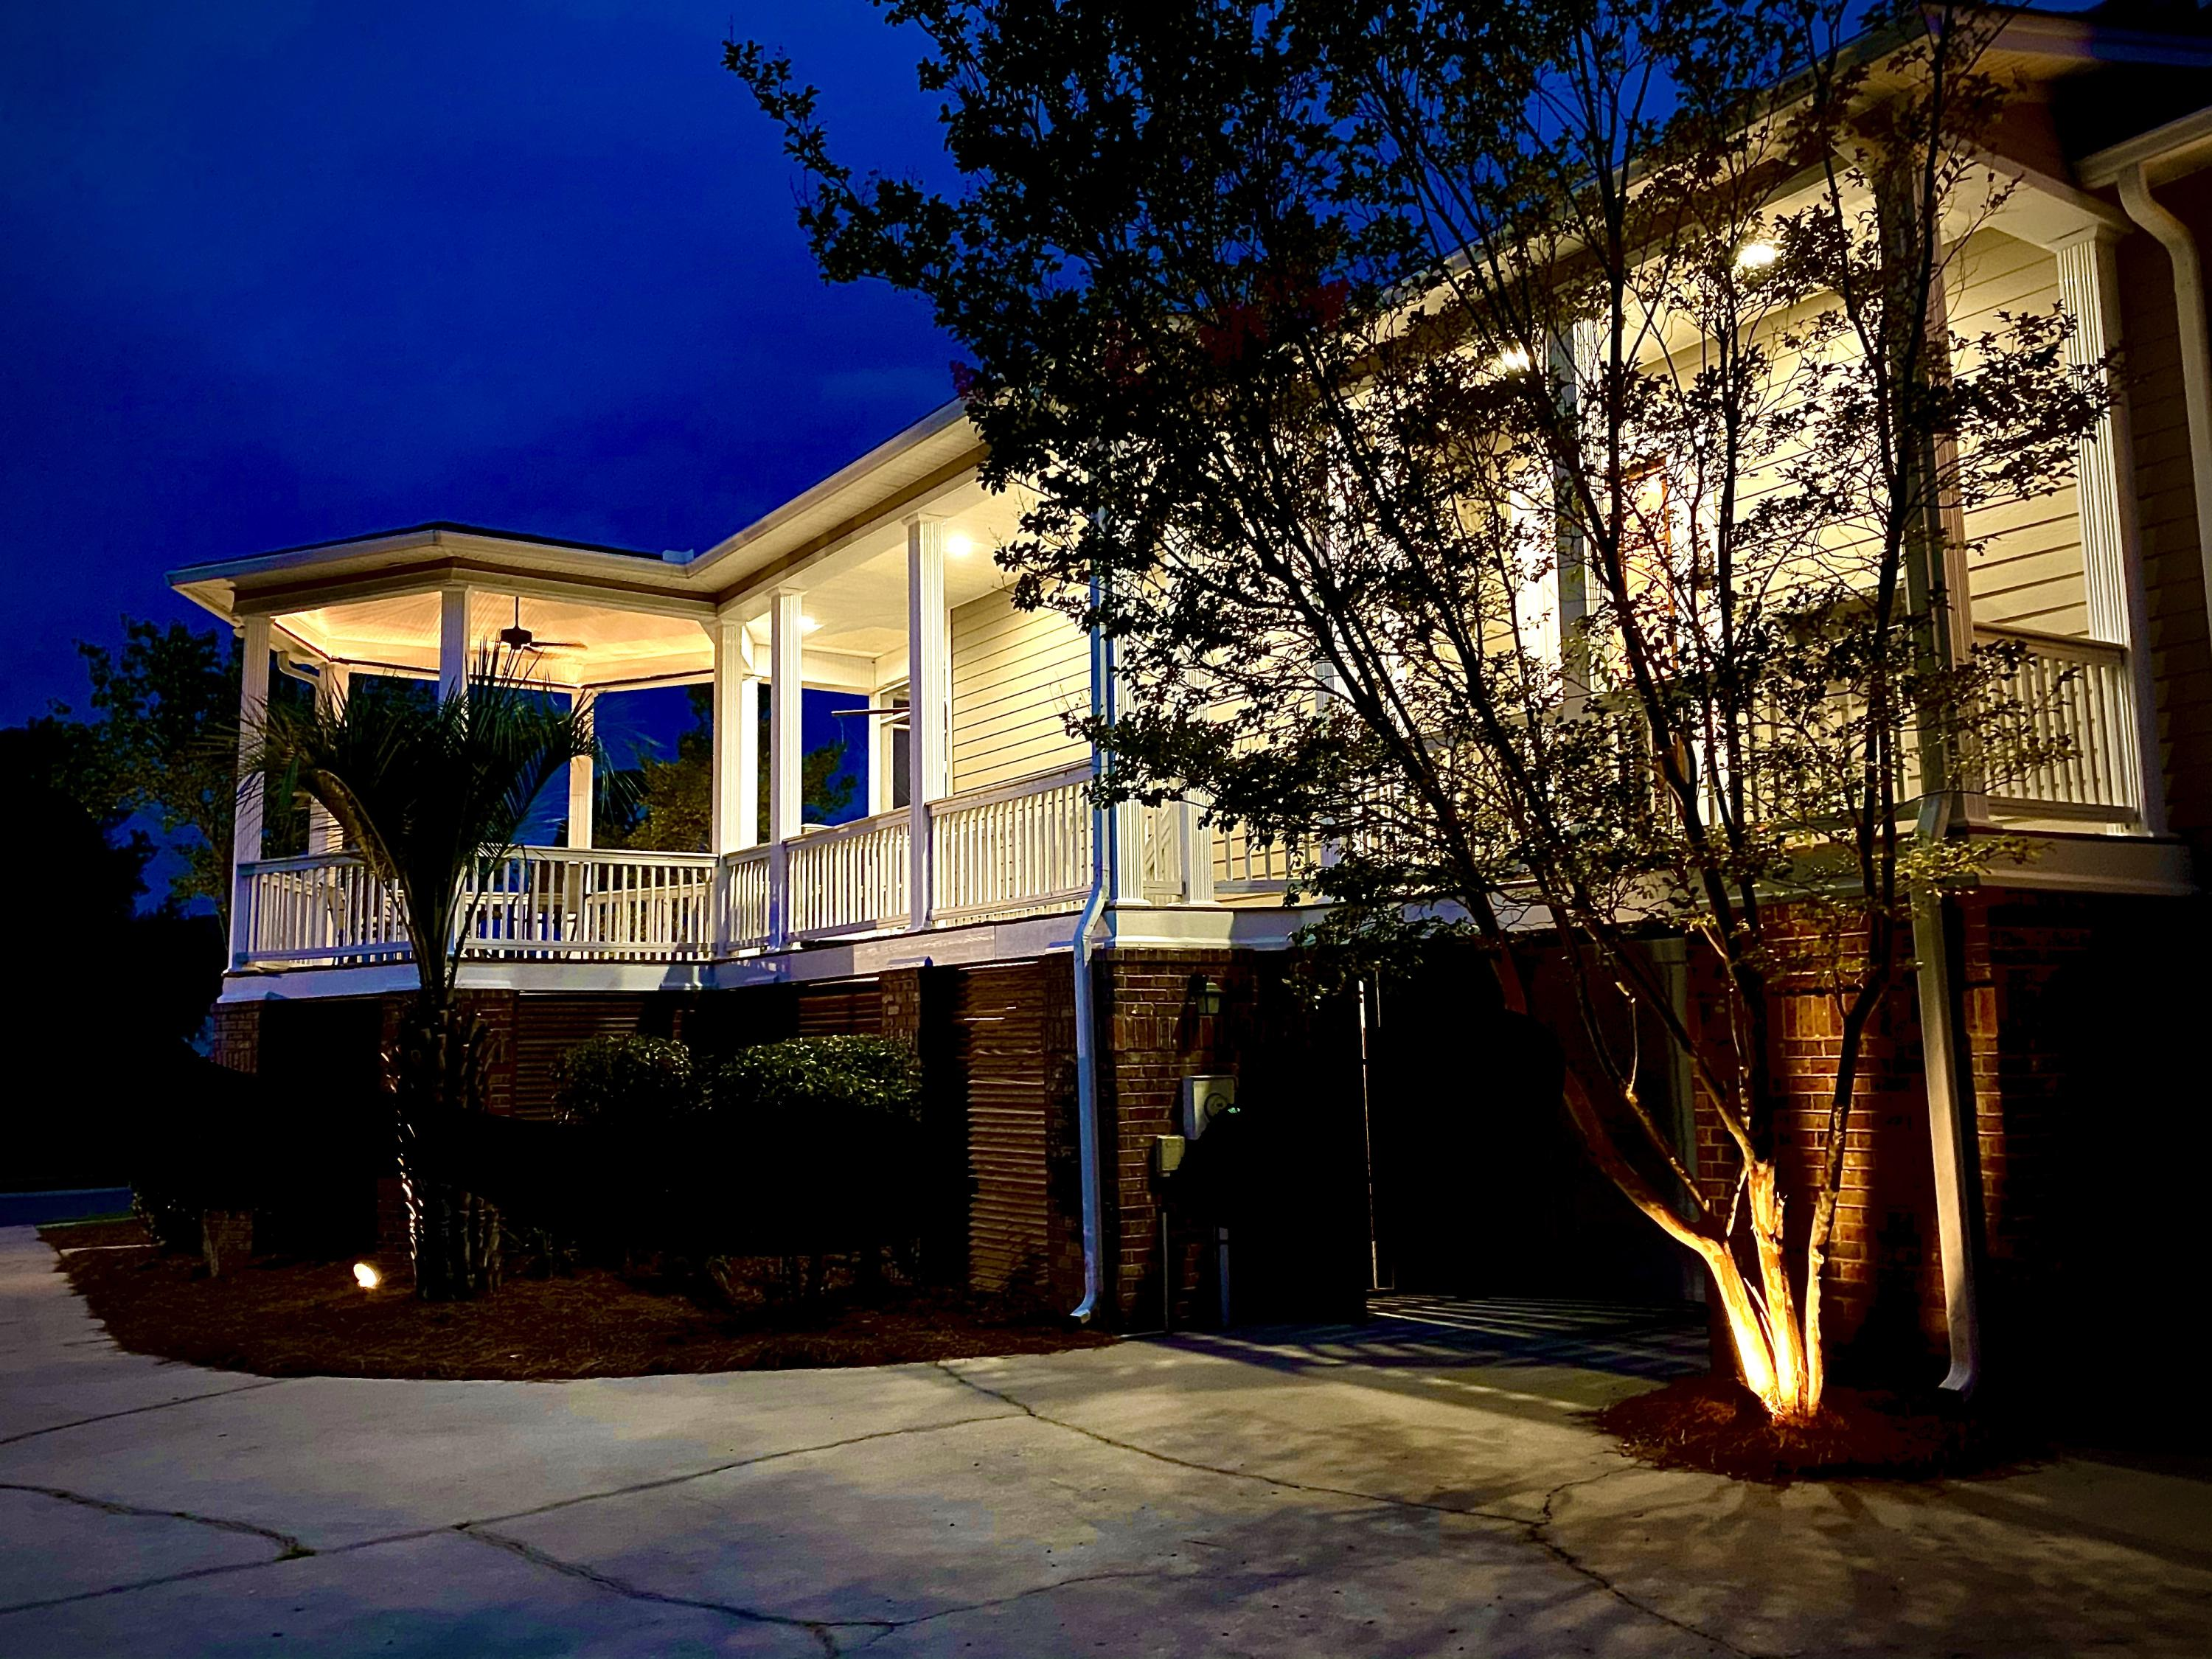 Rivertowne Country Club Homes For Sale - 1721 Rivertowne Country Club, Mount Pleasant, SC - 20